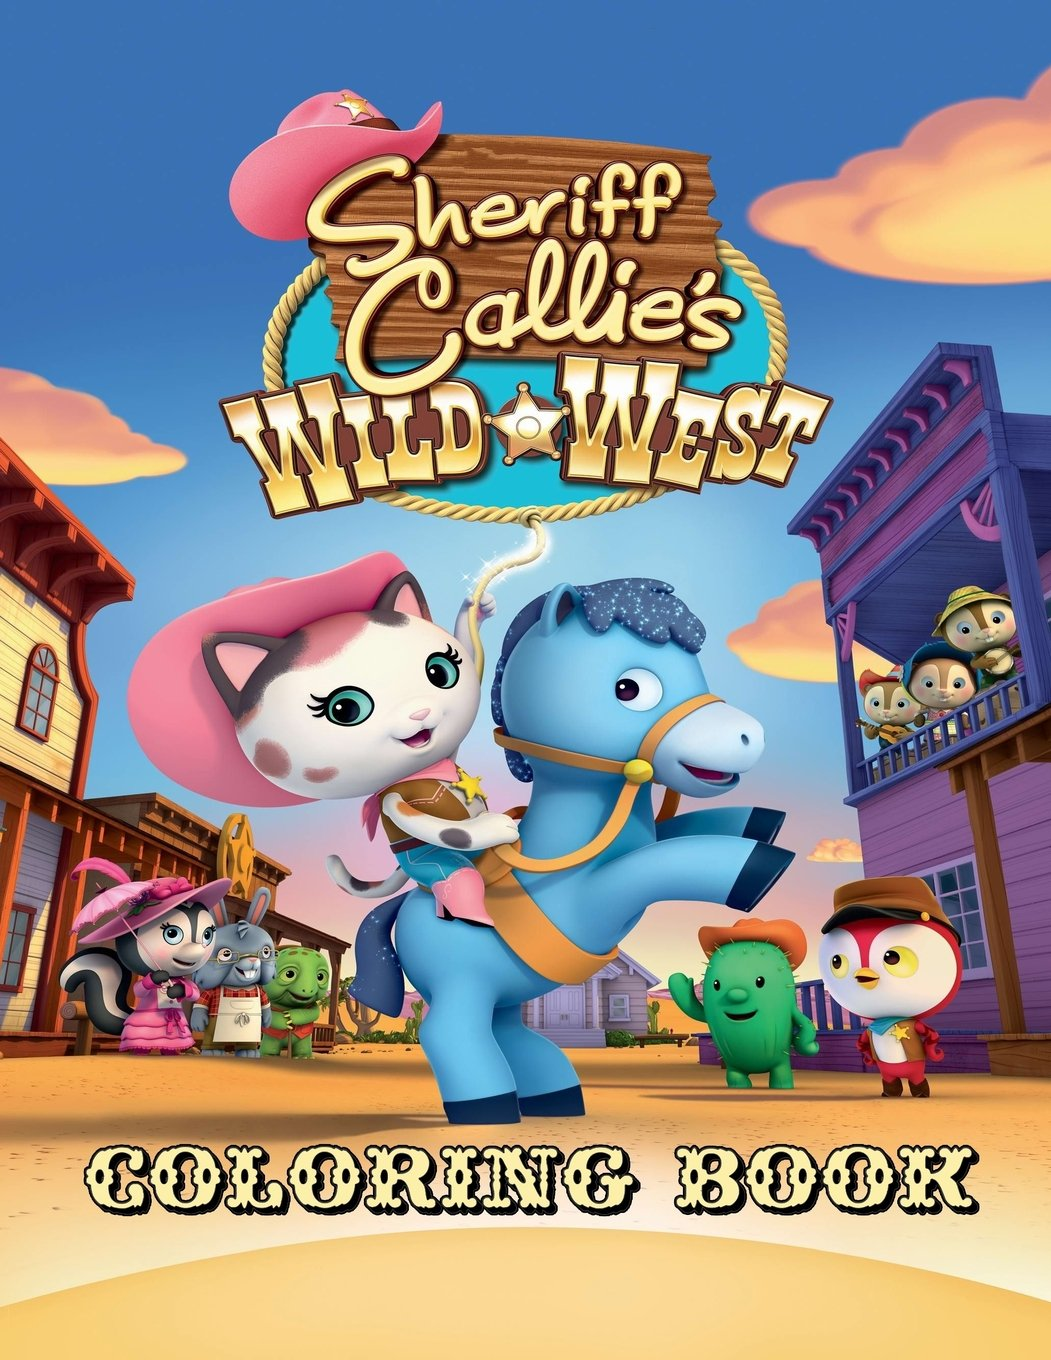 Download Sheriff Callie's Wild West Coloring Book: One of the Best Coloring Book for Kids and Adults, Mini Coloring Book for Little Kids, Activity Book for All ... Books for Girls, Coloring Books for Boys PDF